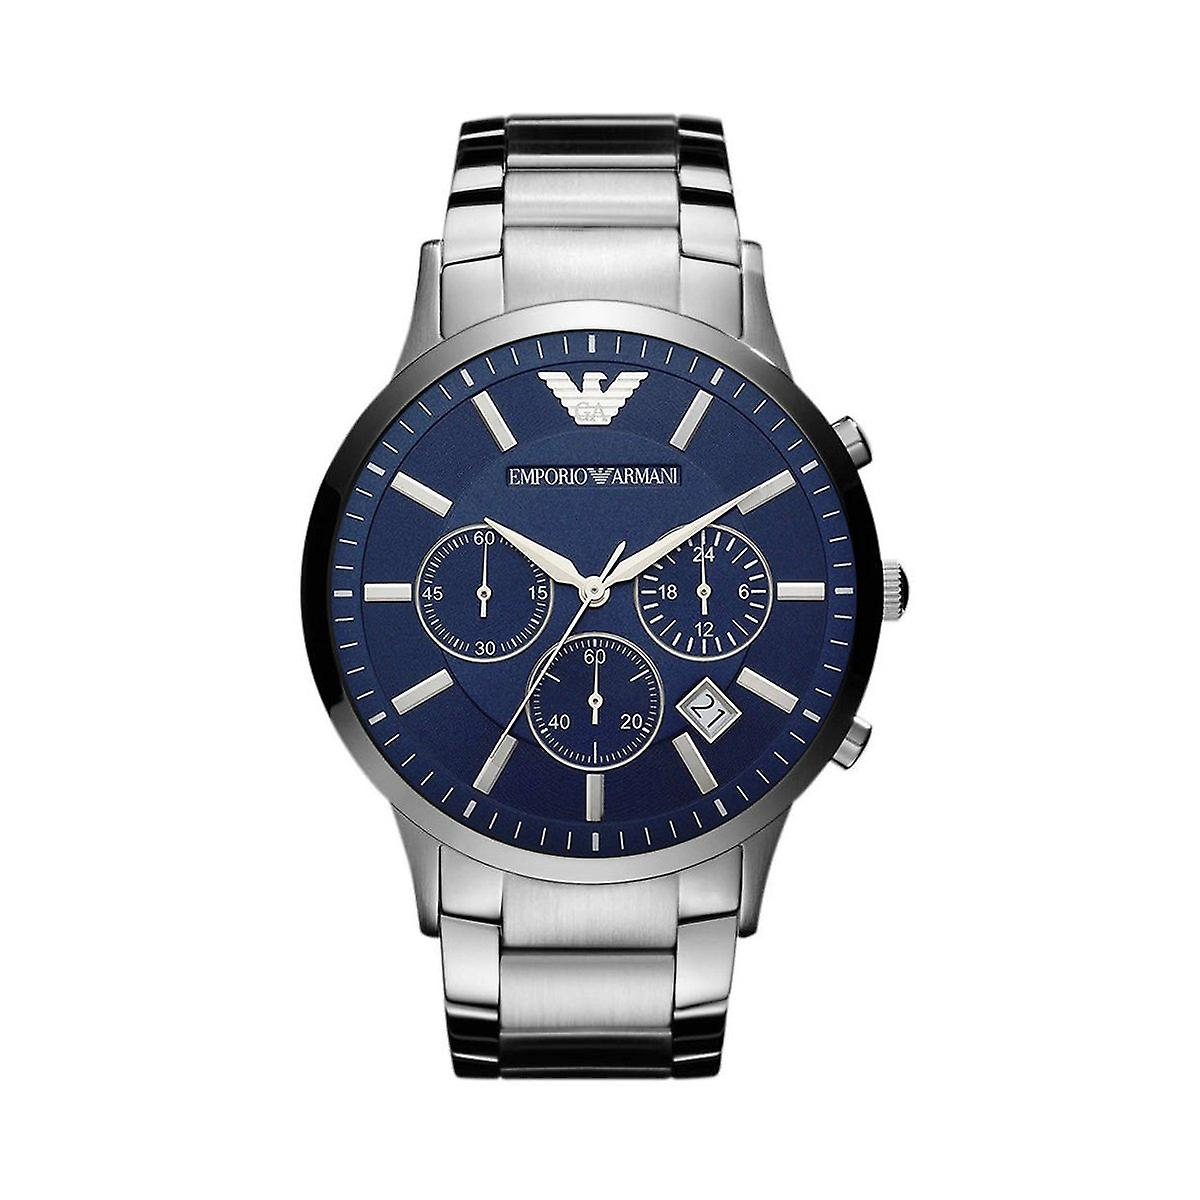 f2ea6fd0358 Emporio Armani AR5860 Men s Chronograph Watch